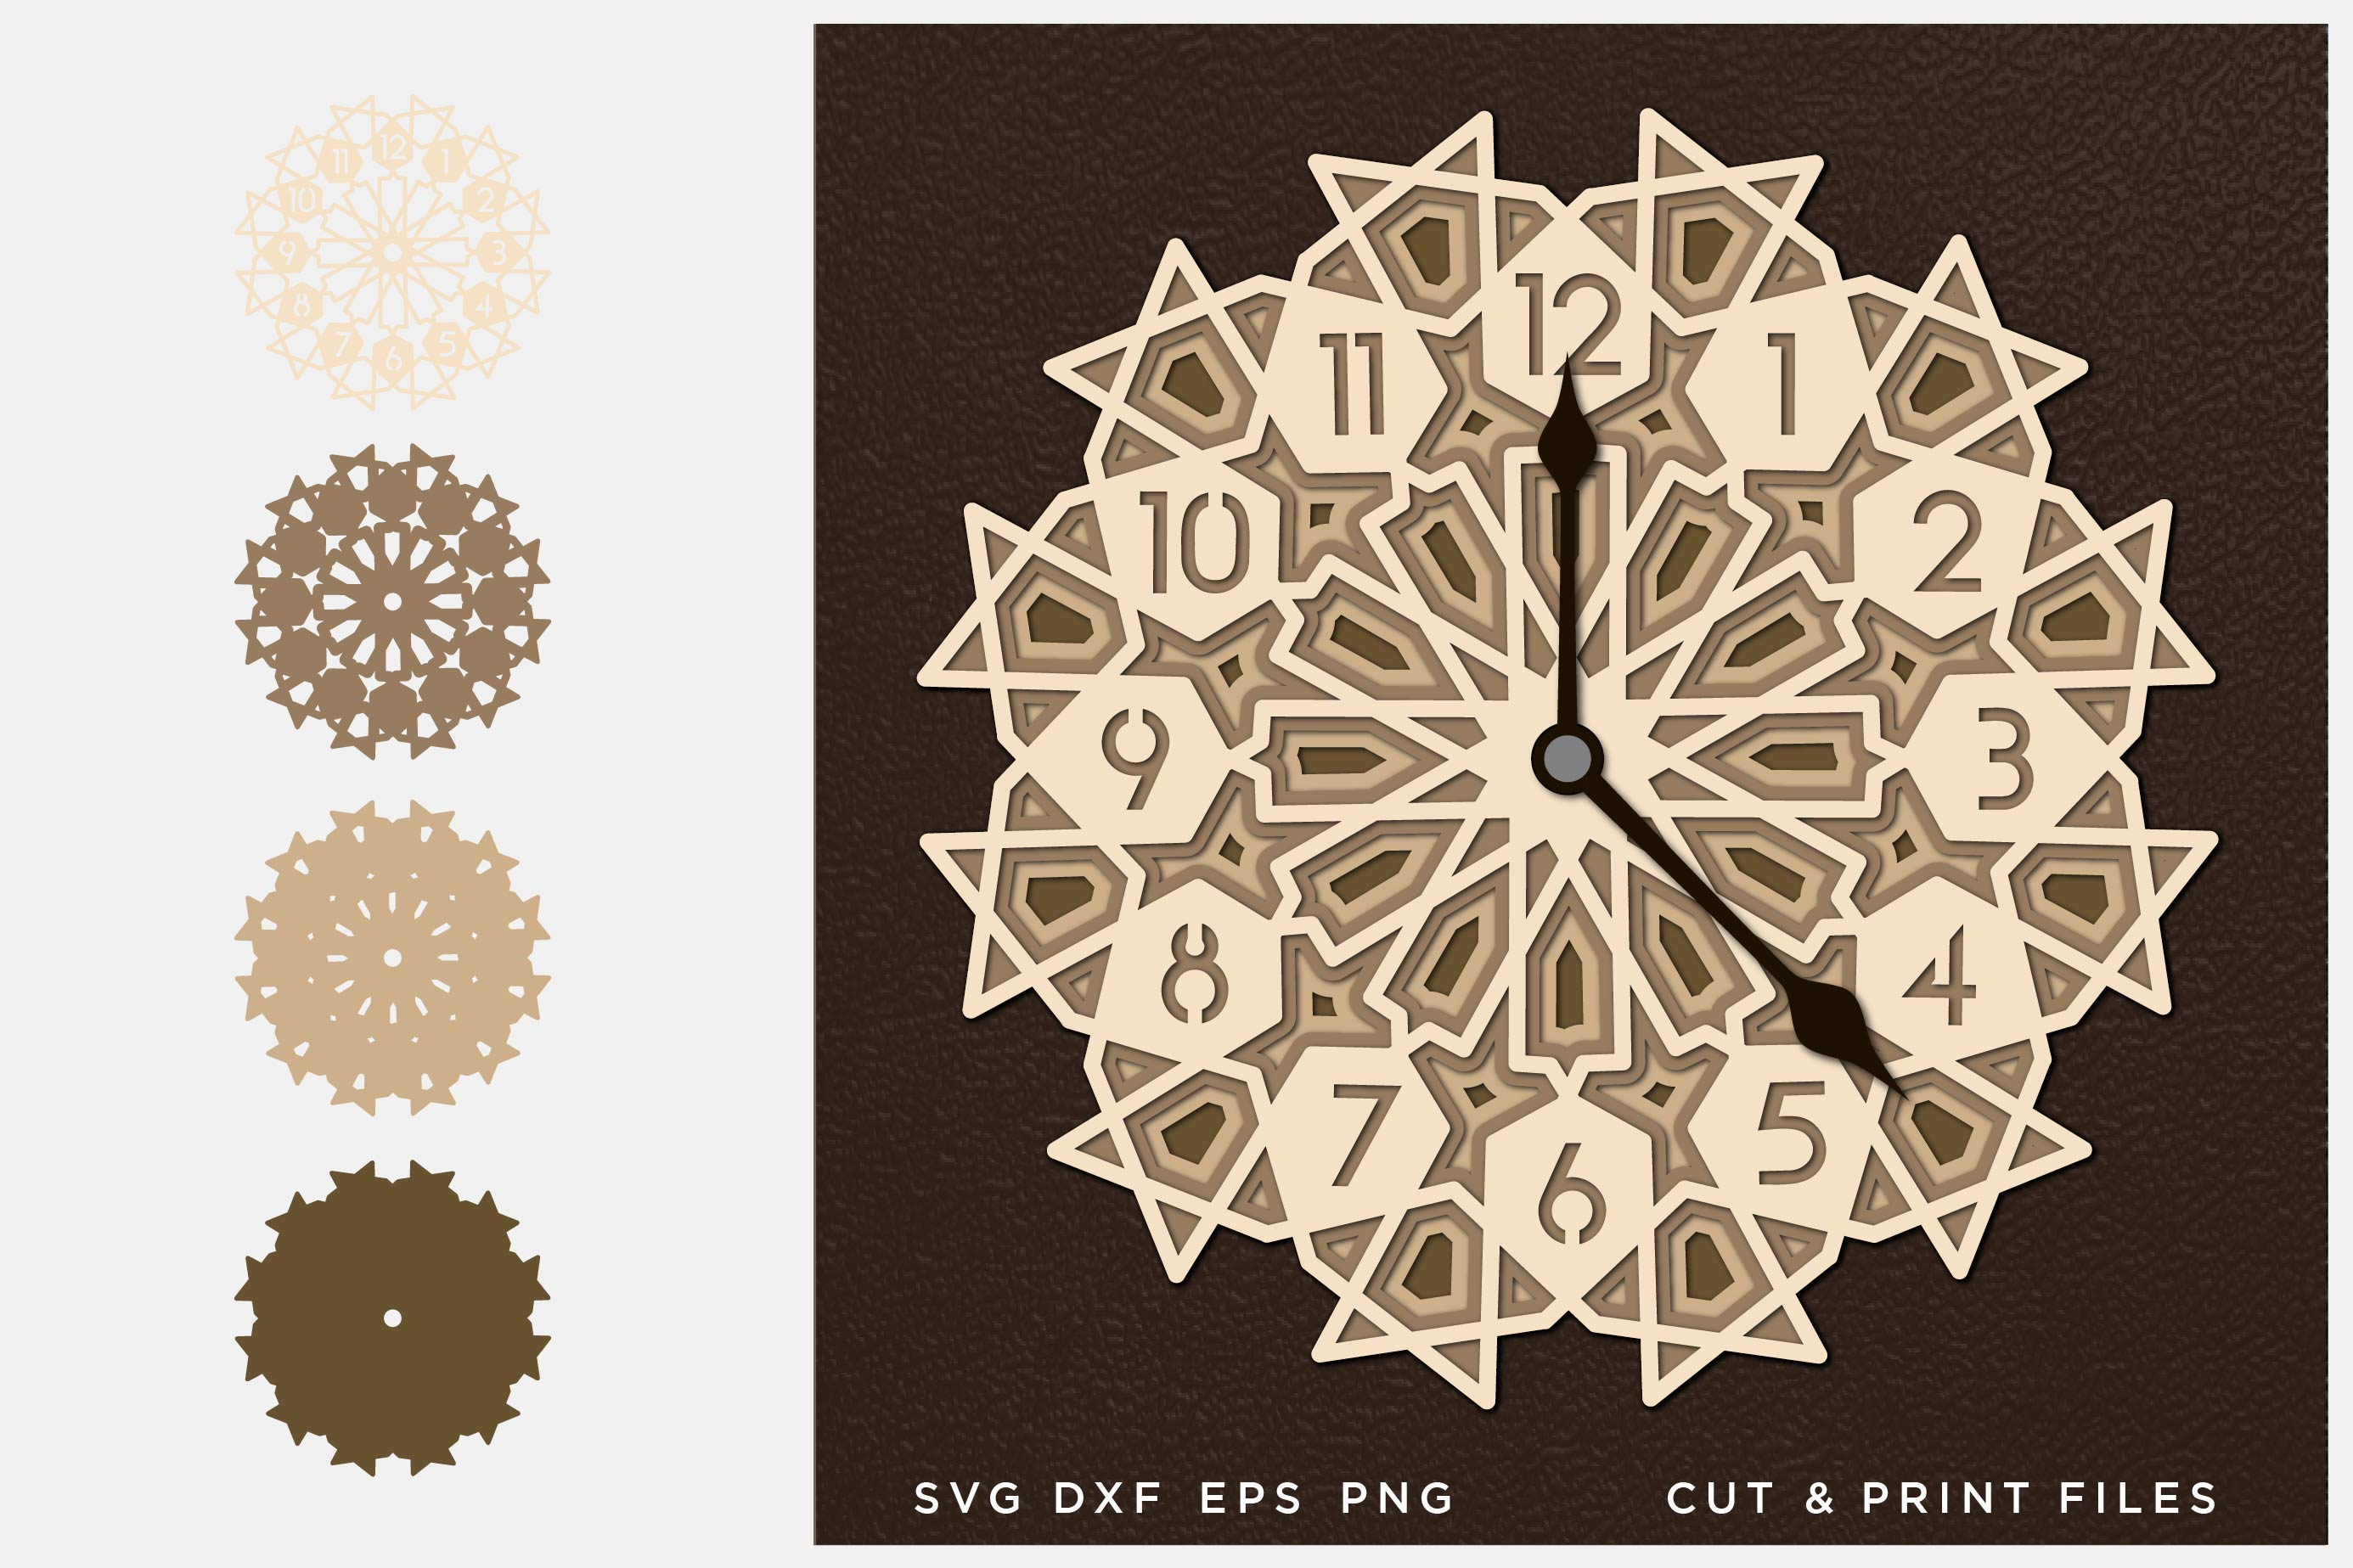 Download Free 4s1vd8zoulmtem for Cricut Explore, Silhouette and other cutting machines.